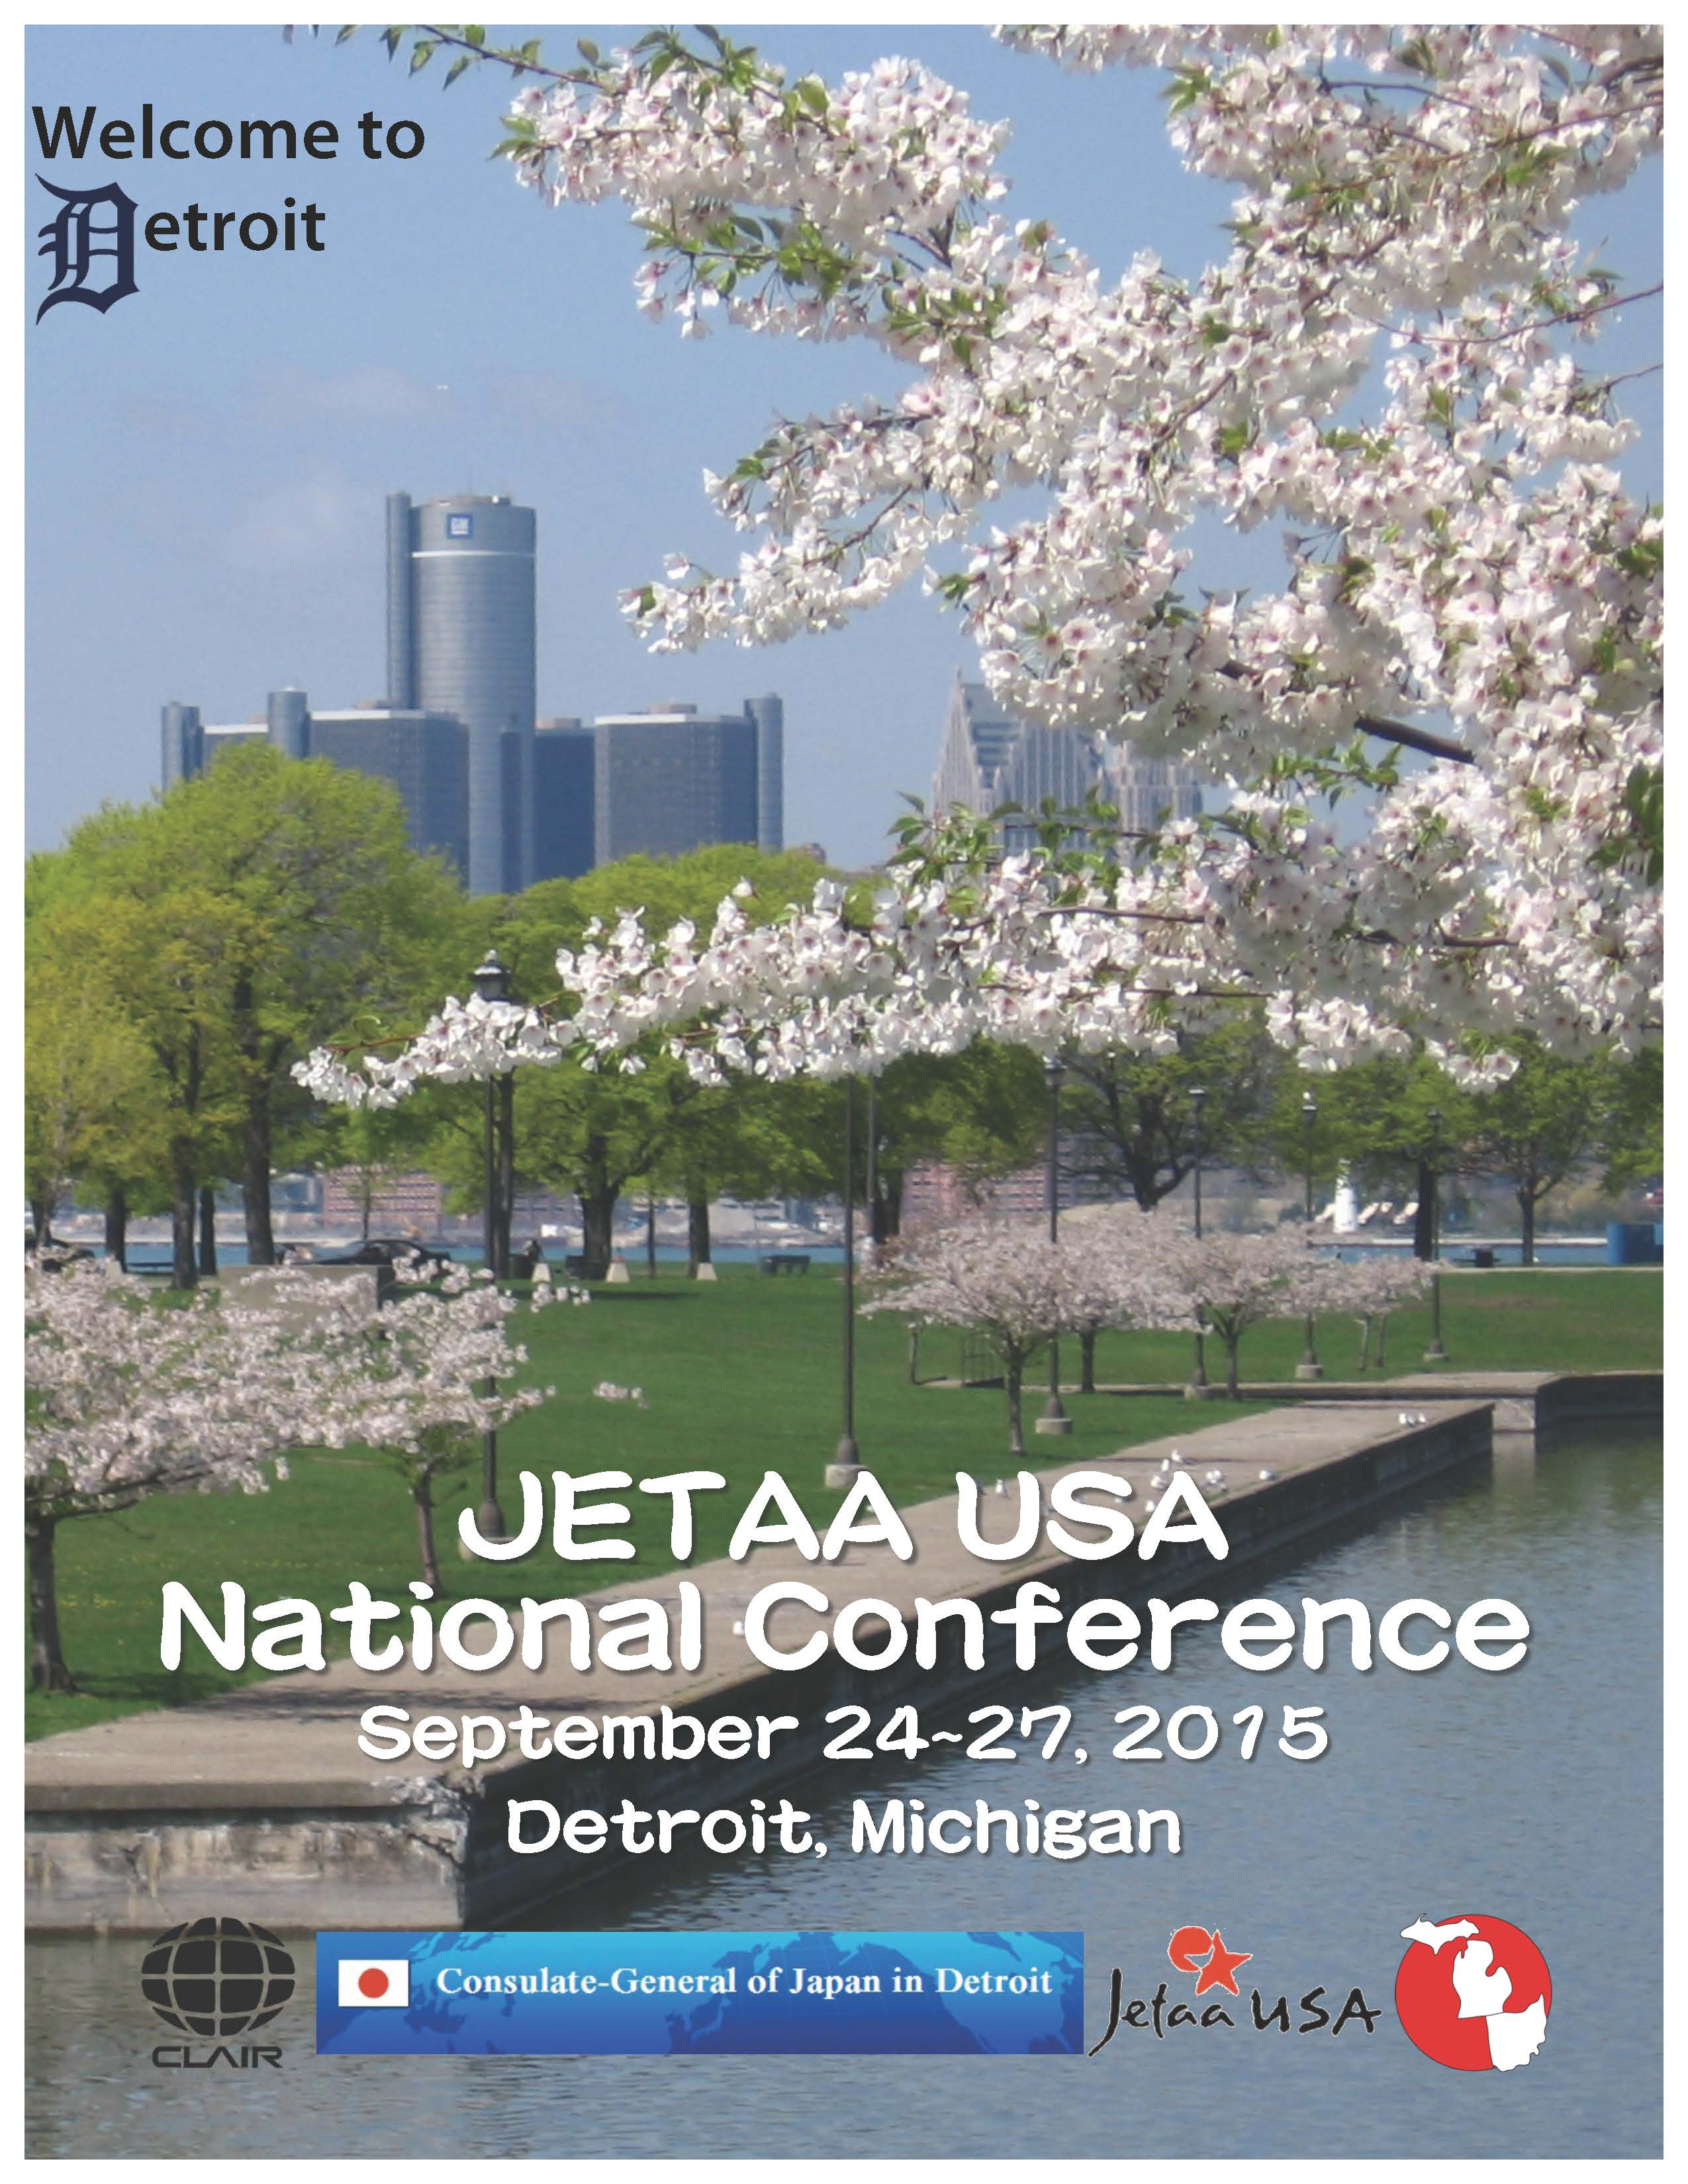 JETAA National Conference Program 2015 COVER_Page_01